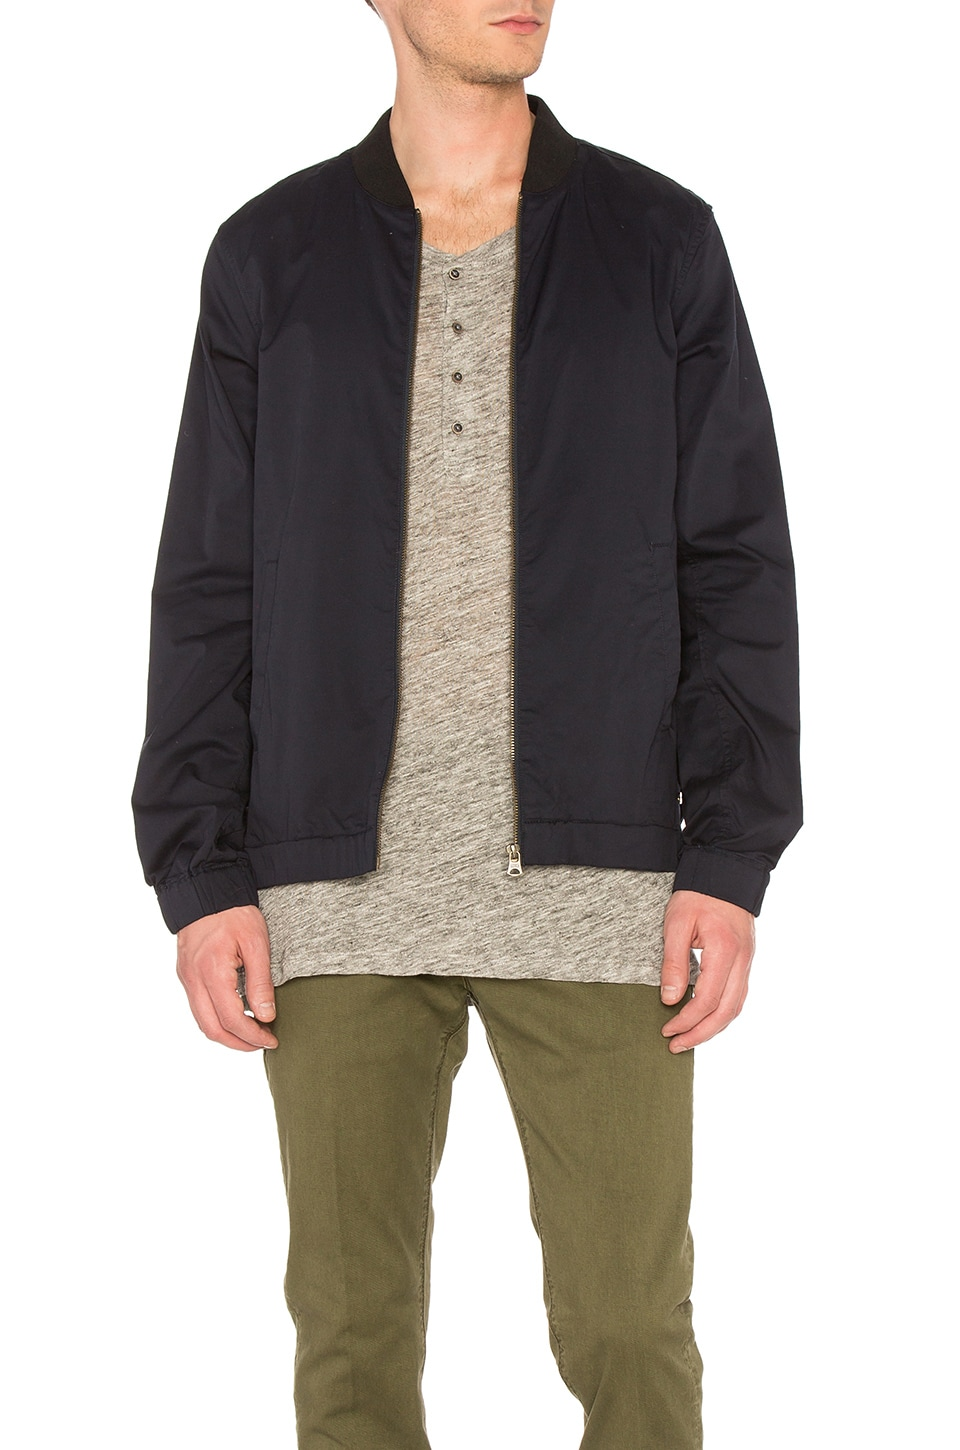 Bomber Shirt by Scotch & Soda